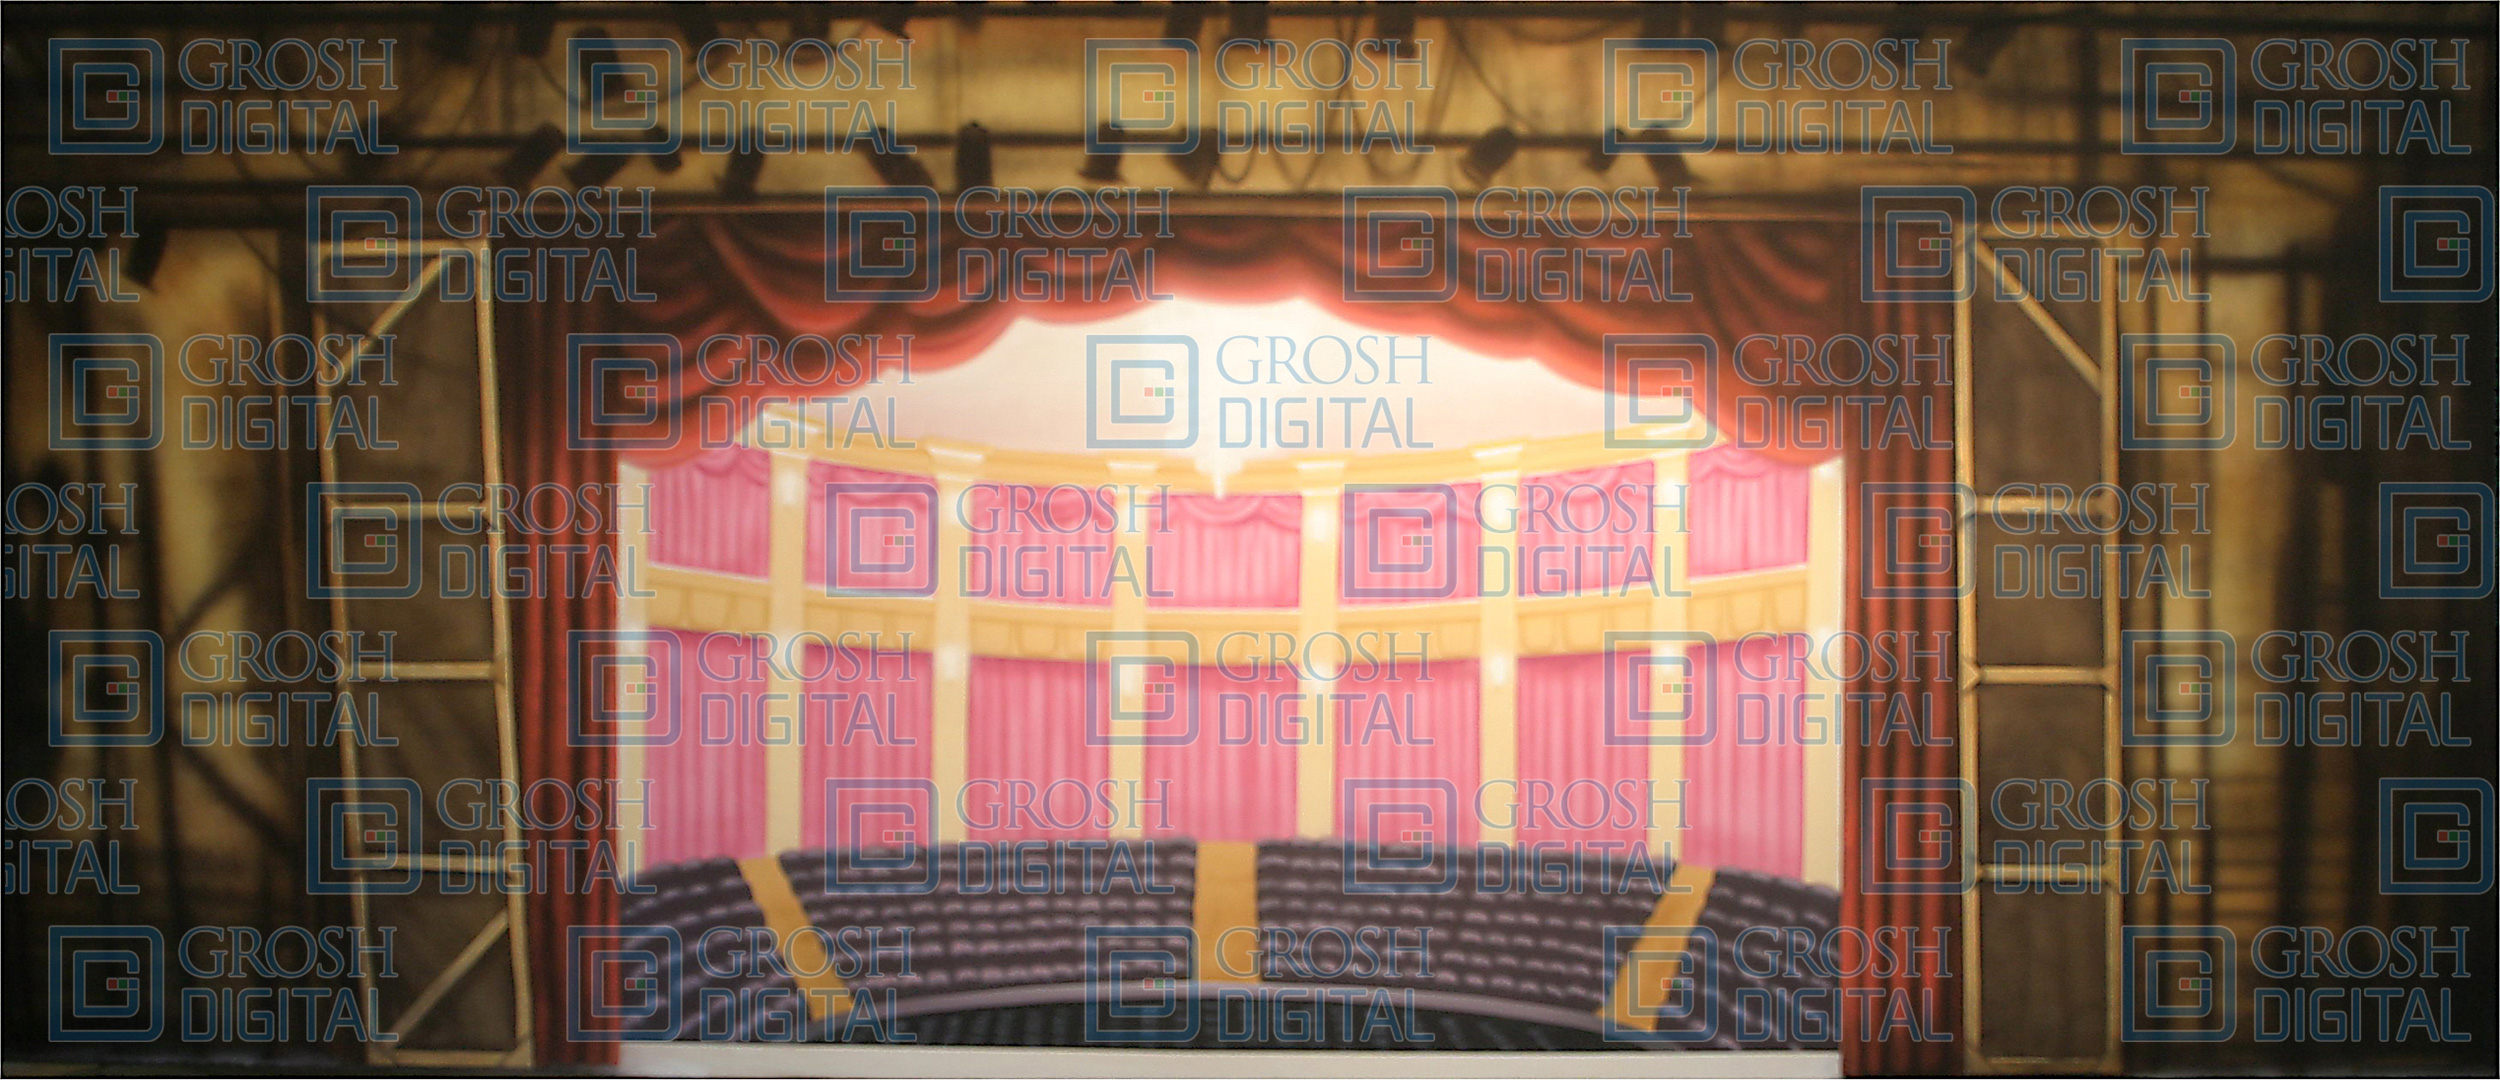 Rear Backstage Theatre Projected Backdrop for 42nd Street, Bye Bye Birdie, Crazy for You, Interiors